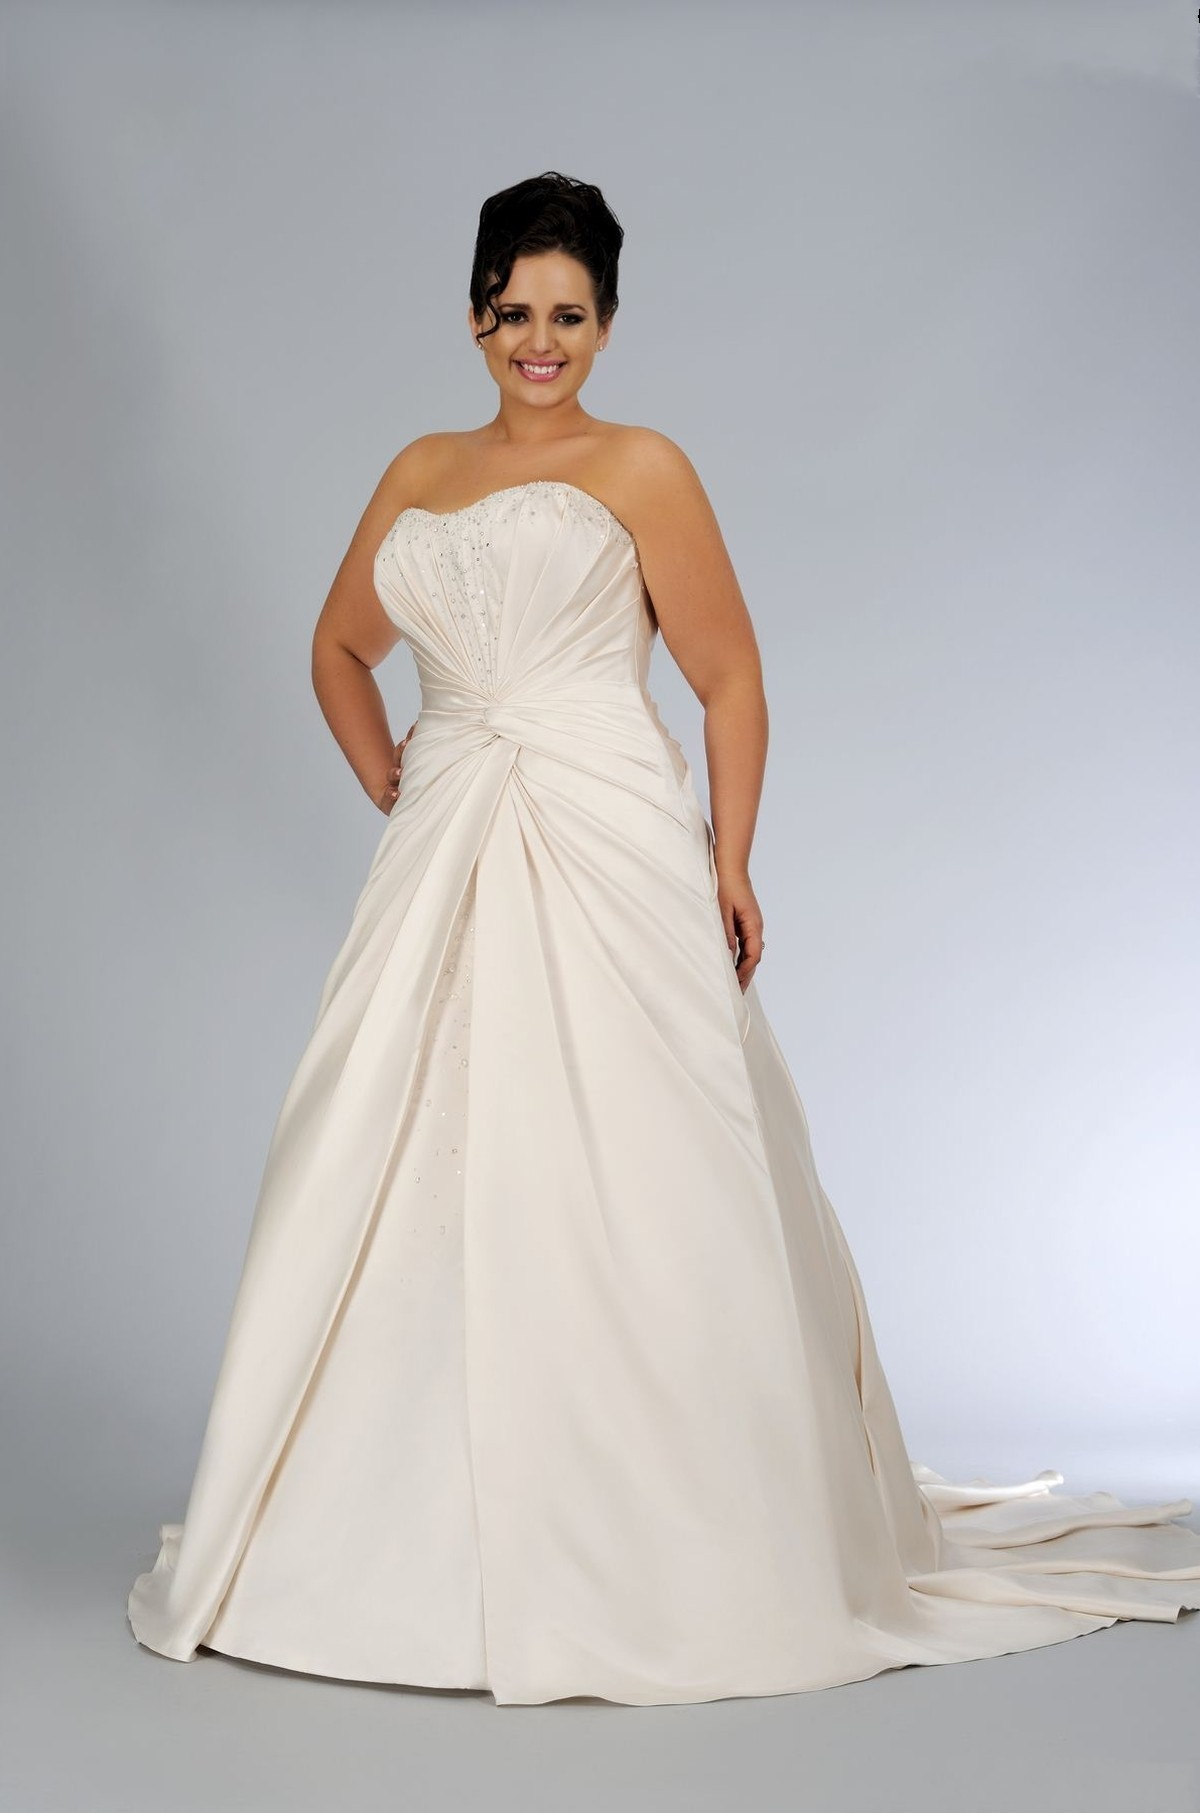 plus size wedding dresses — Inexpensive Economy size Bridal gown ...